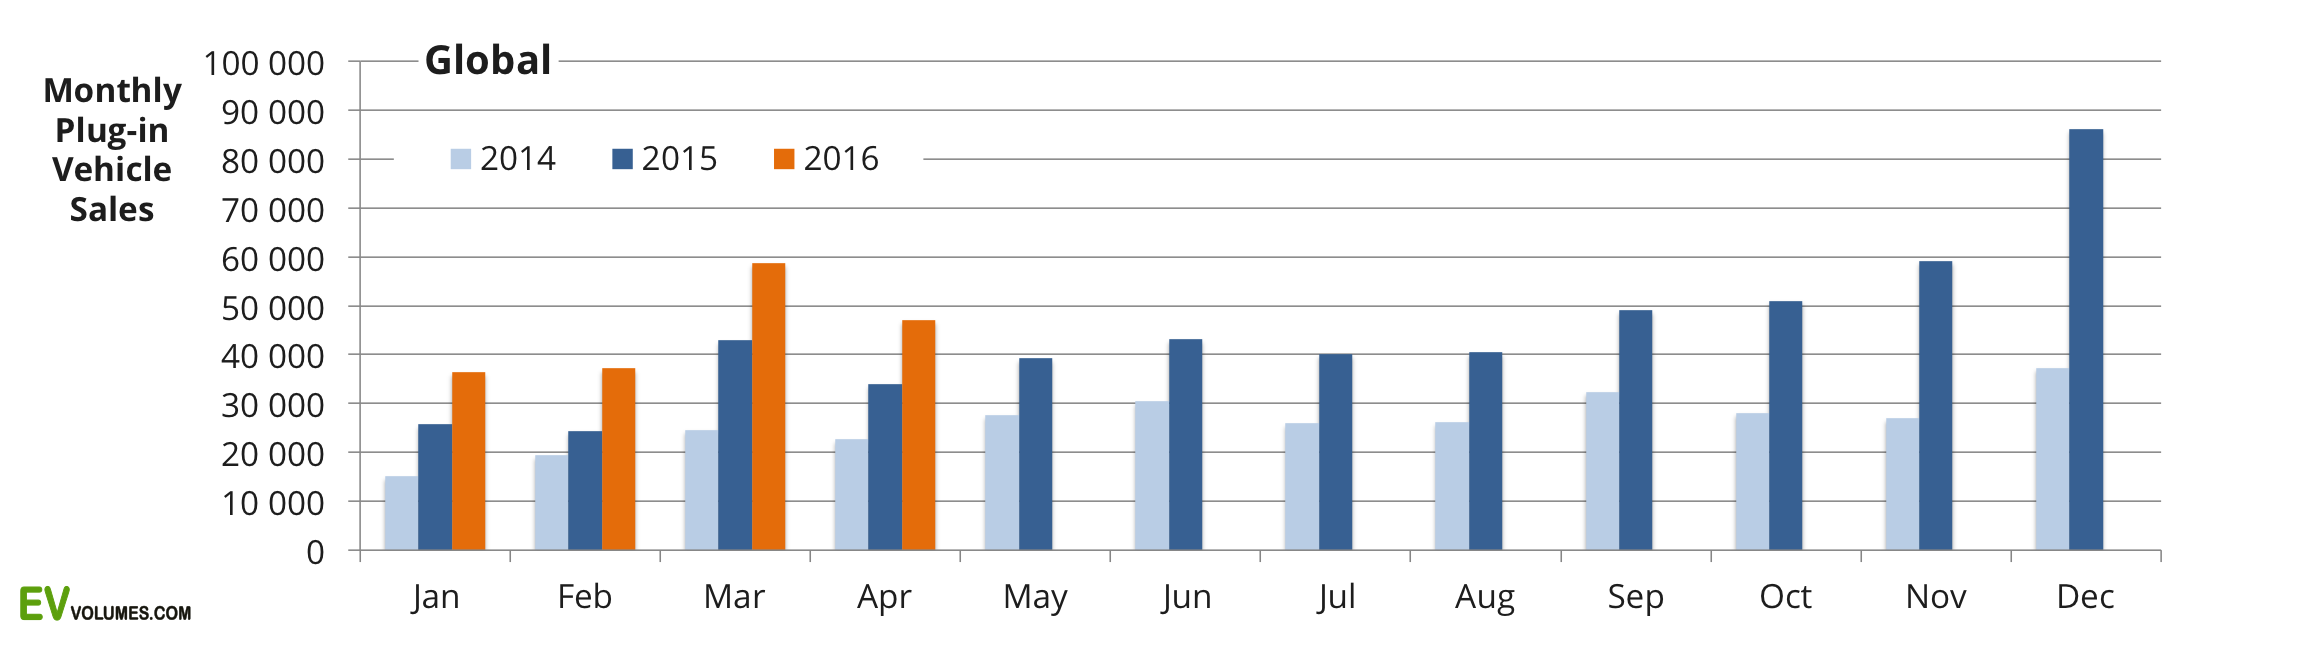 first Global Plug-in Vehicle Sales for Q1-2016 and Preliminary April image